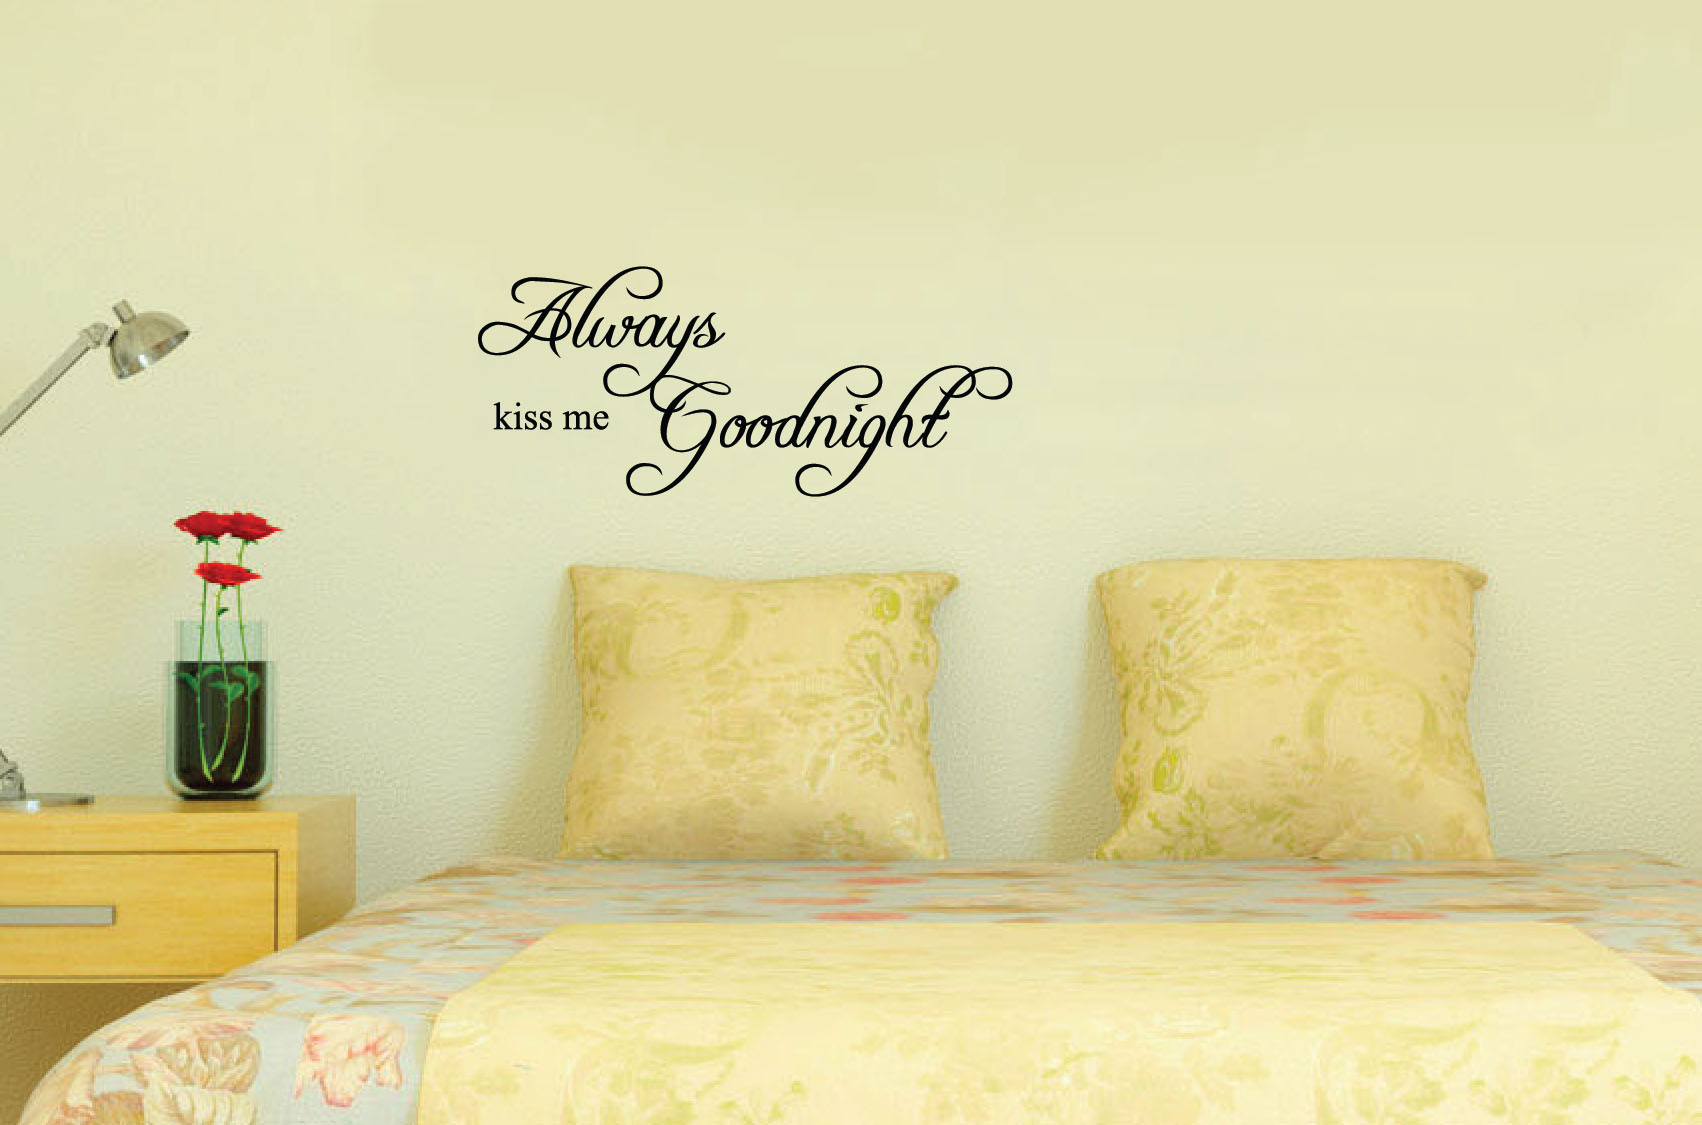 always-kiss-me-goodnight-bedroom-decal.jpg